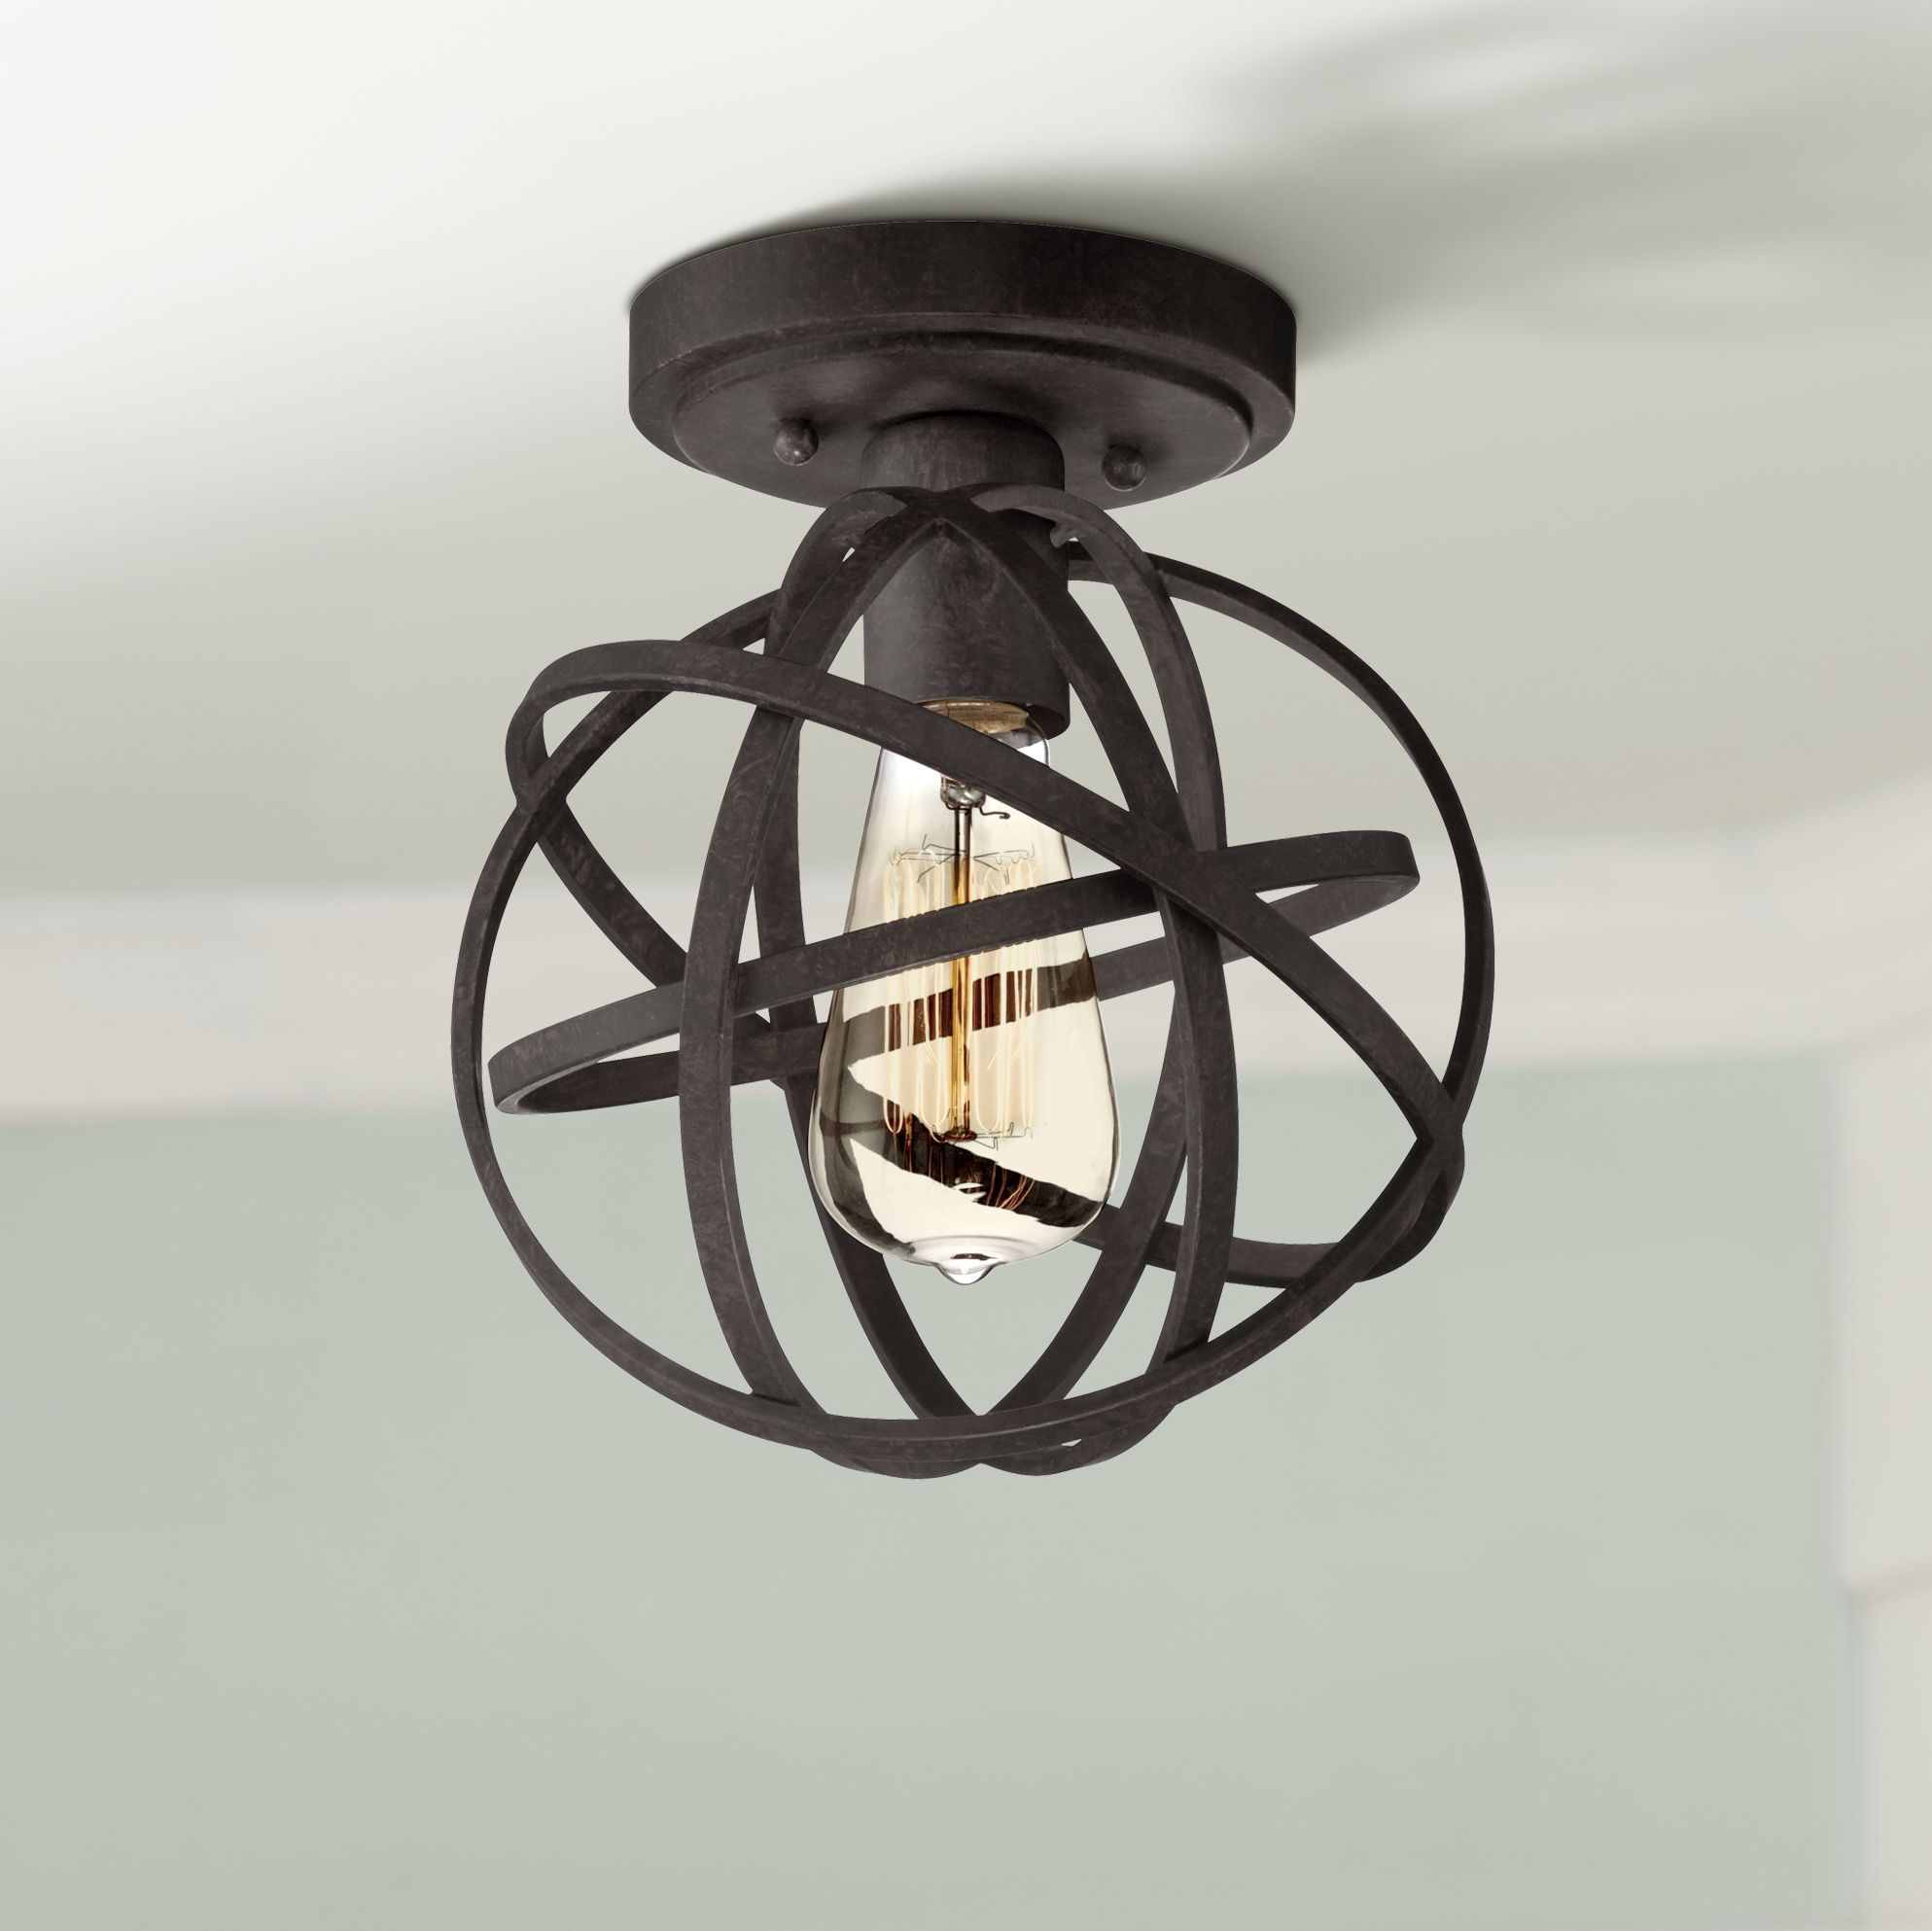 franklin iron works rustic industrial ceiling light semi flush mount fixture led edison atomic black 8 wide for bedroom kitchen walmart com lights outdoor fan with and remote lowes